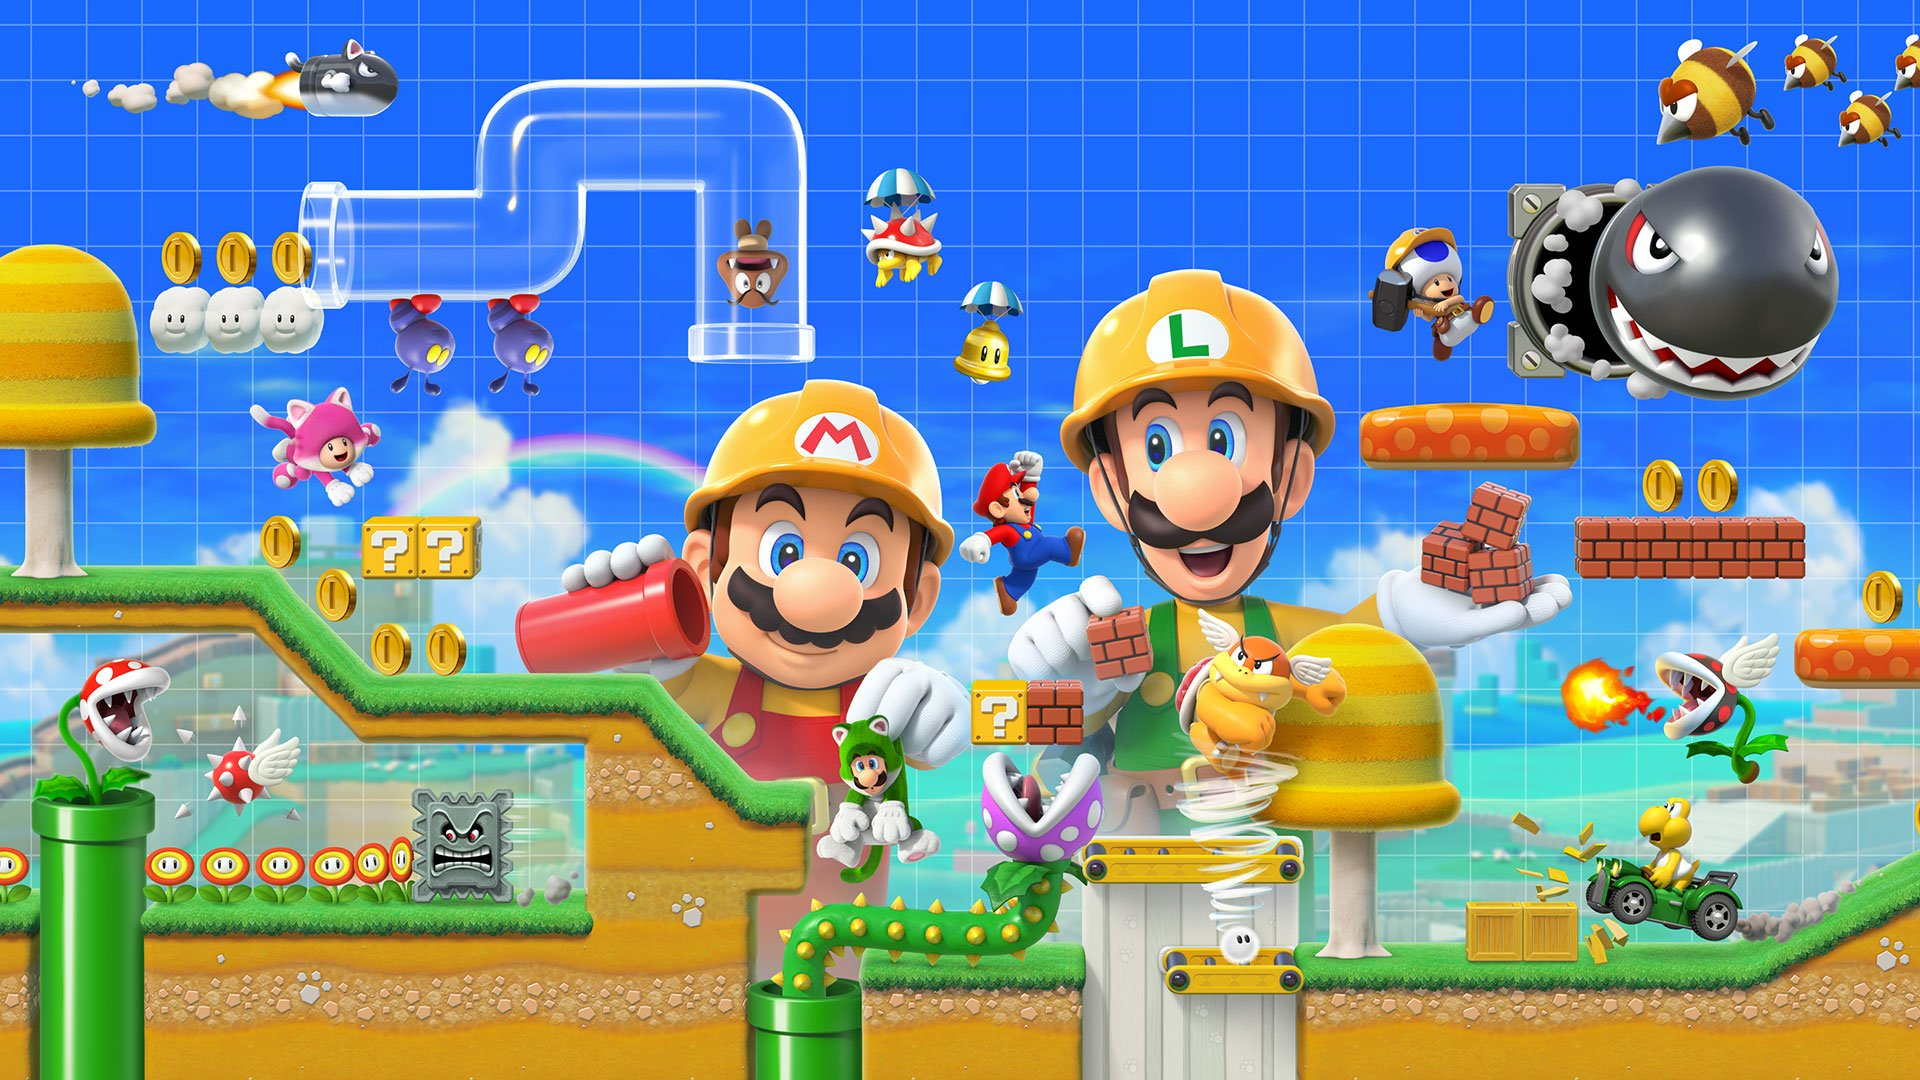 It takes most players around 5-6 hours to beat Story Mode in Super Mario Maker 2.